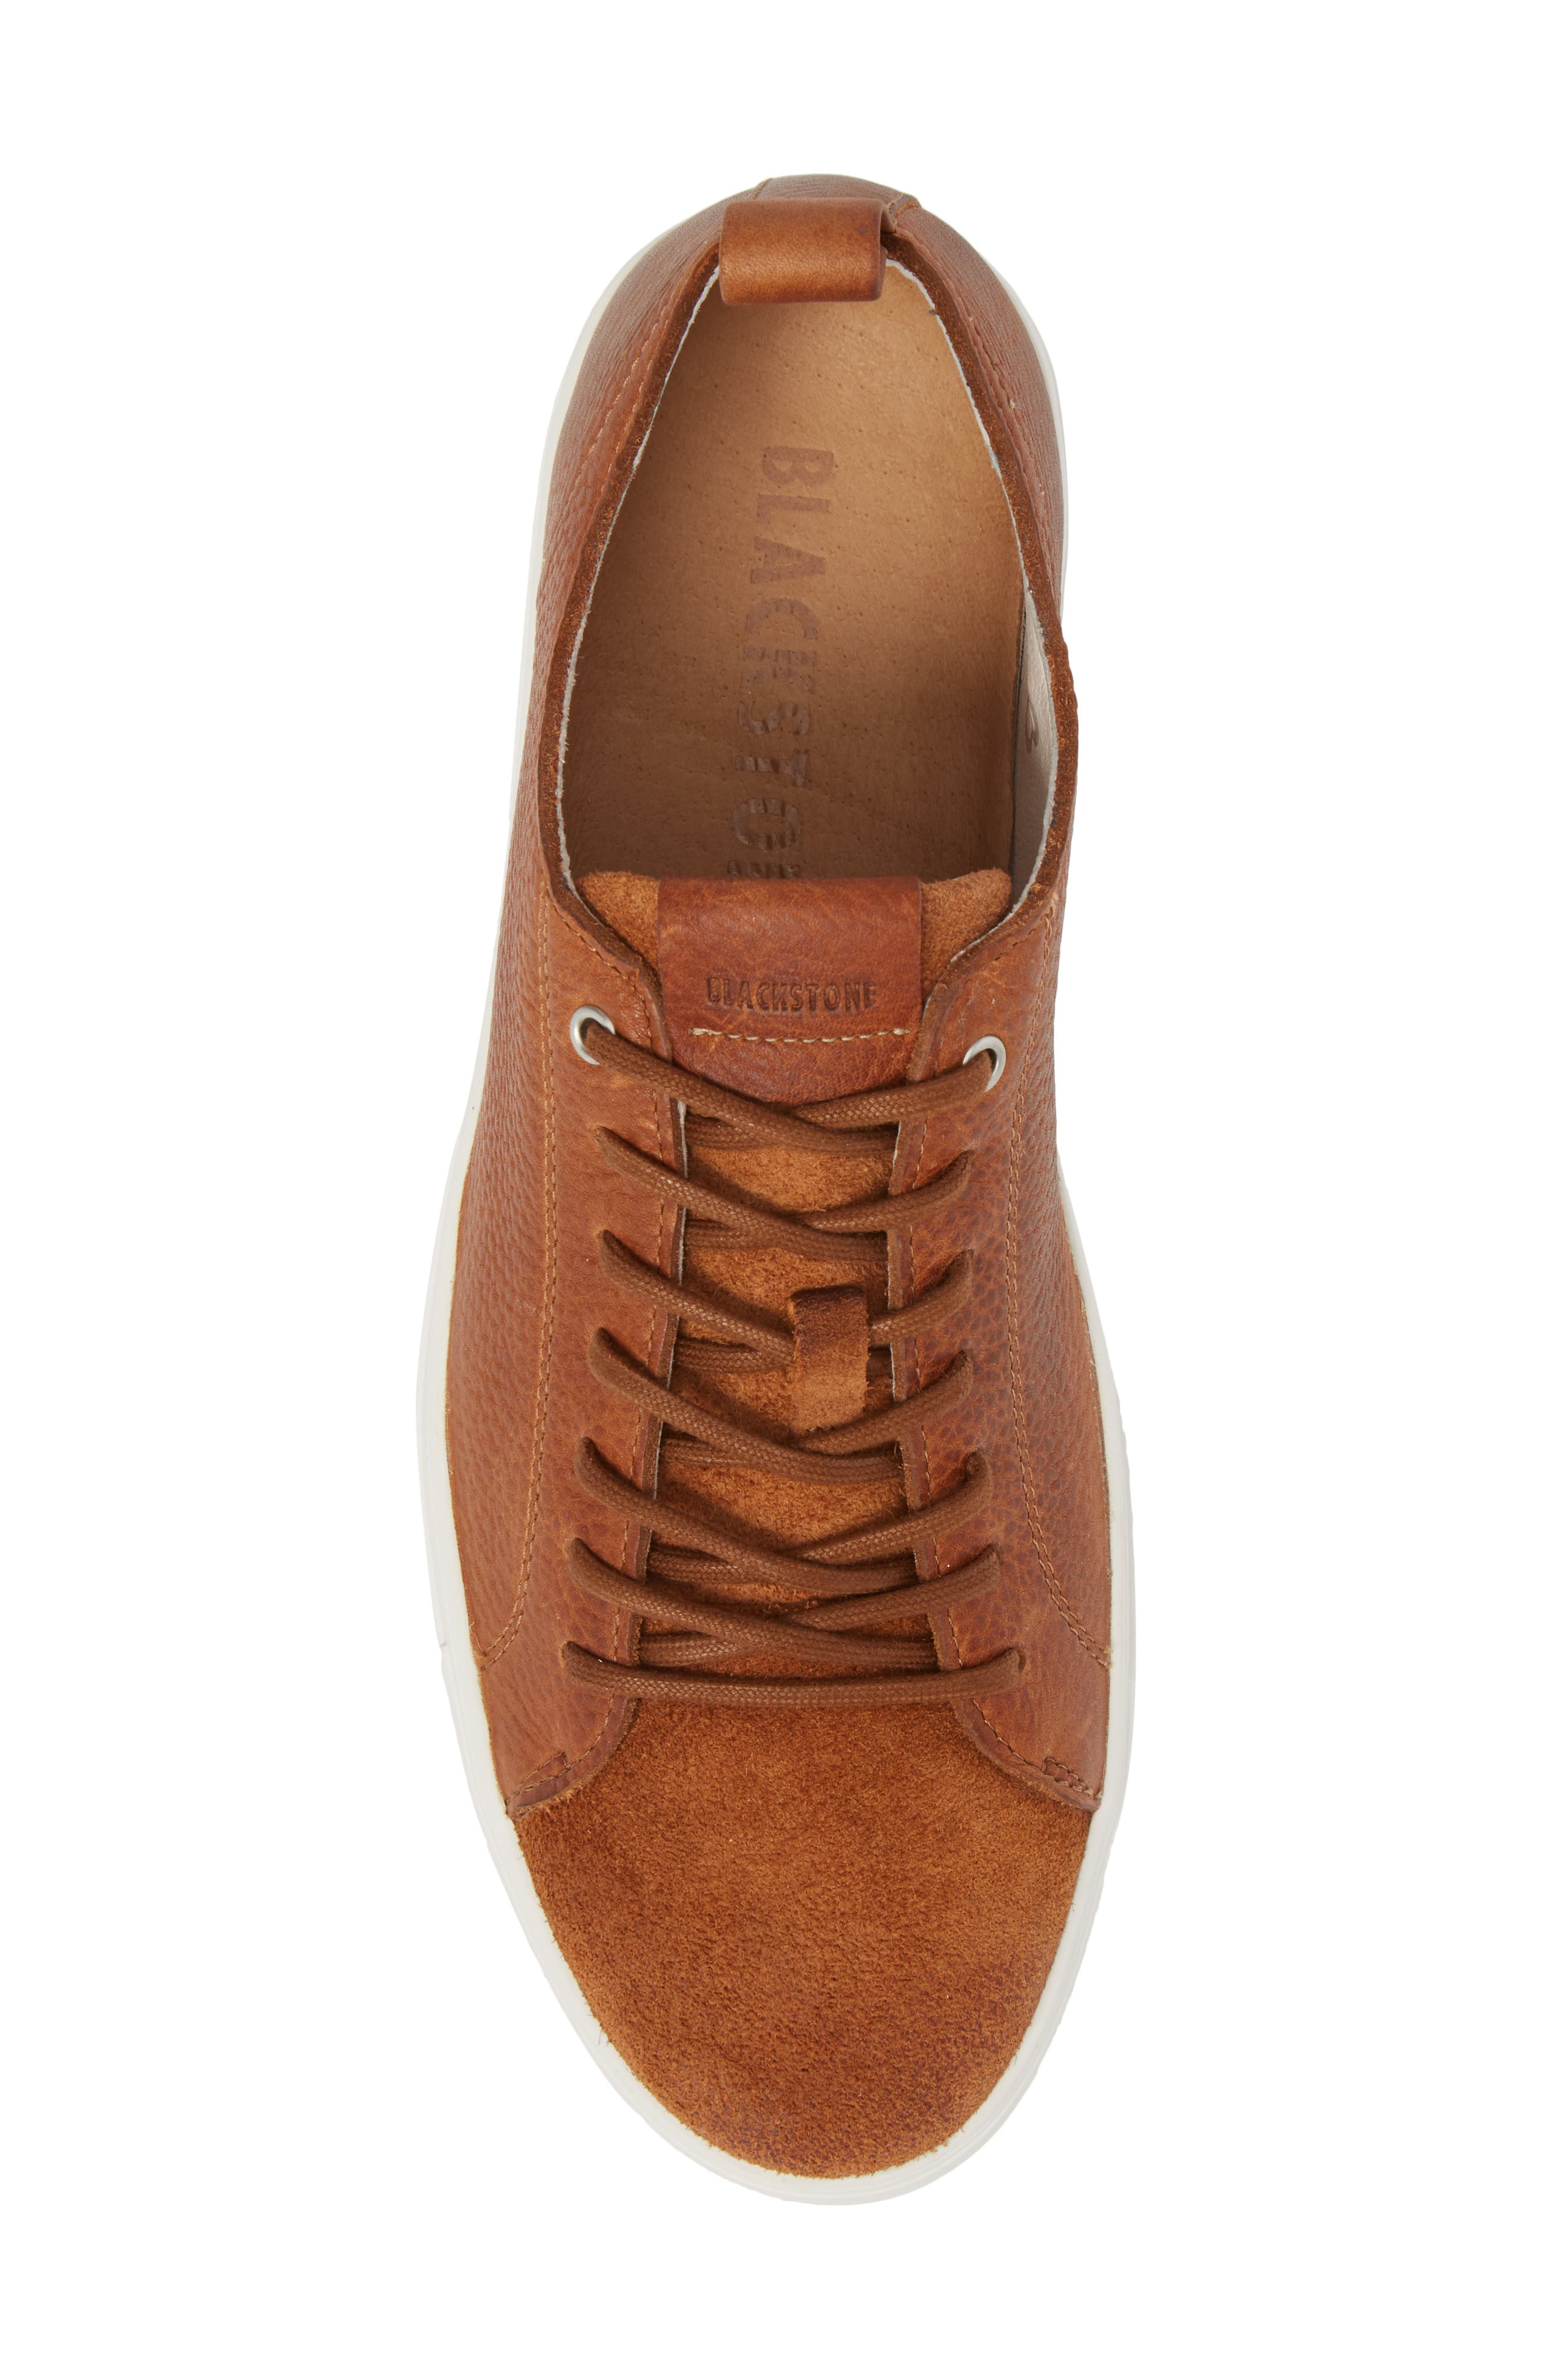 PM46 Low Top Sneaker,                             Alternate thumbnail 5, color,                             Cuoio Leather